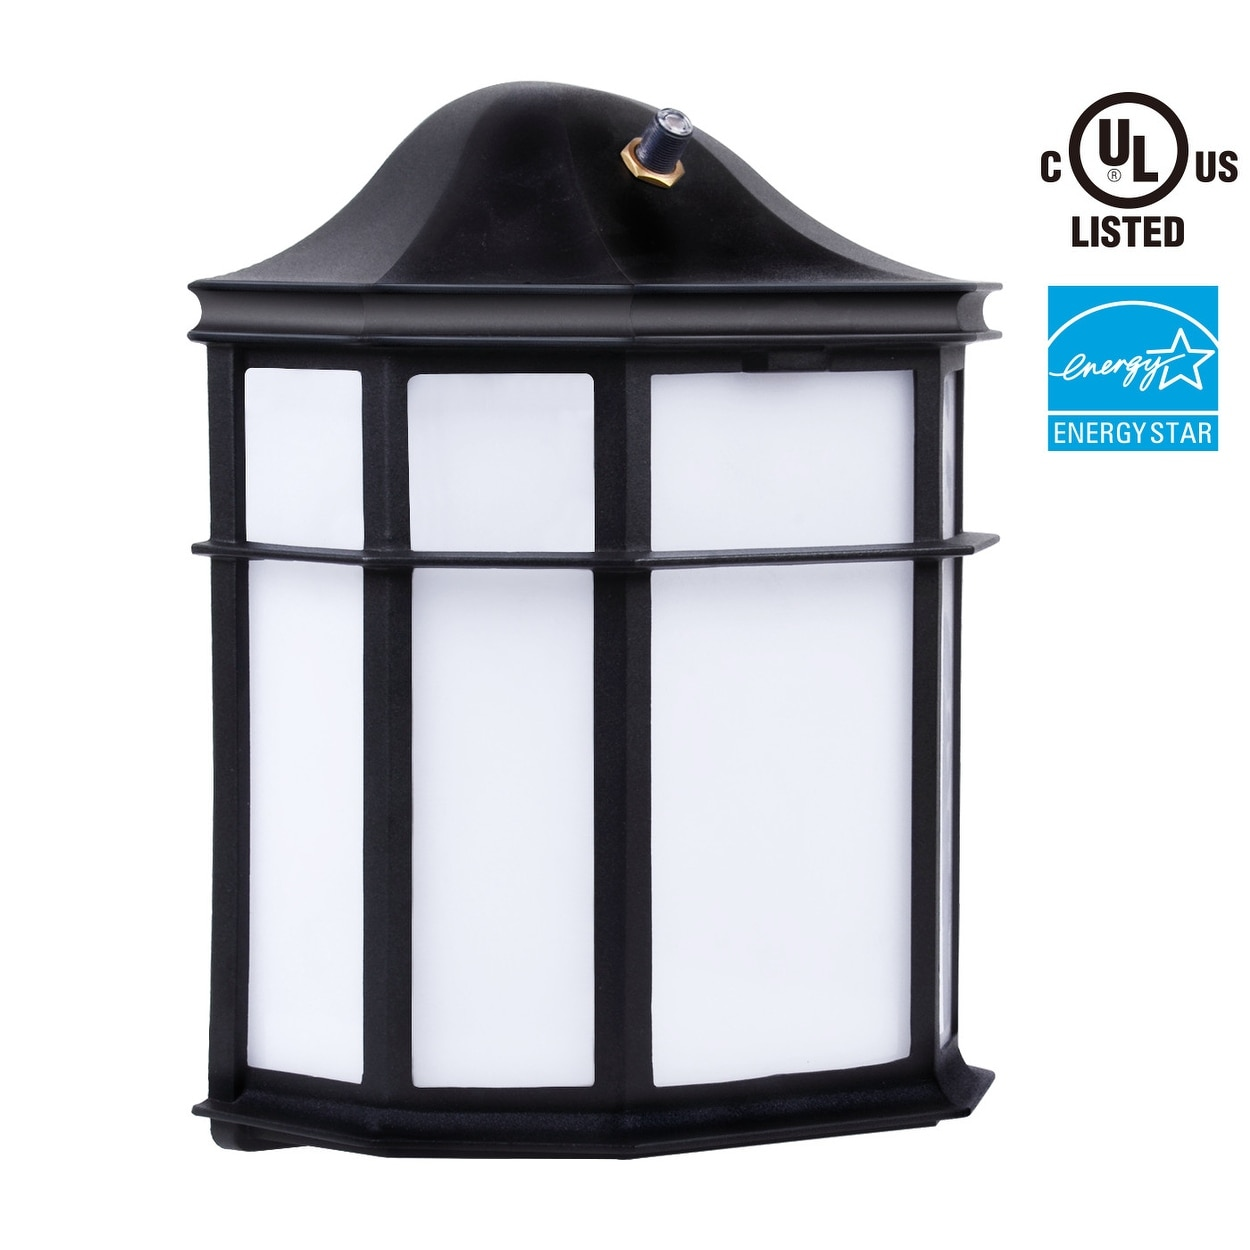 Shop Photocell Led Outdoor Wall Light 23w Energy Star5000k Photocells For Lights Daylightwet Location Free Shipping Today 13888608